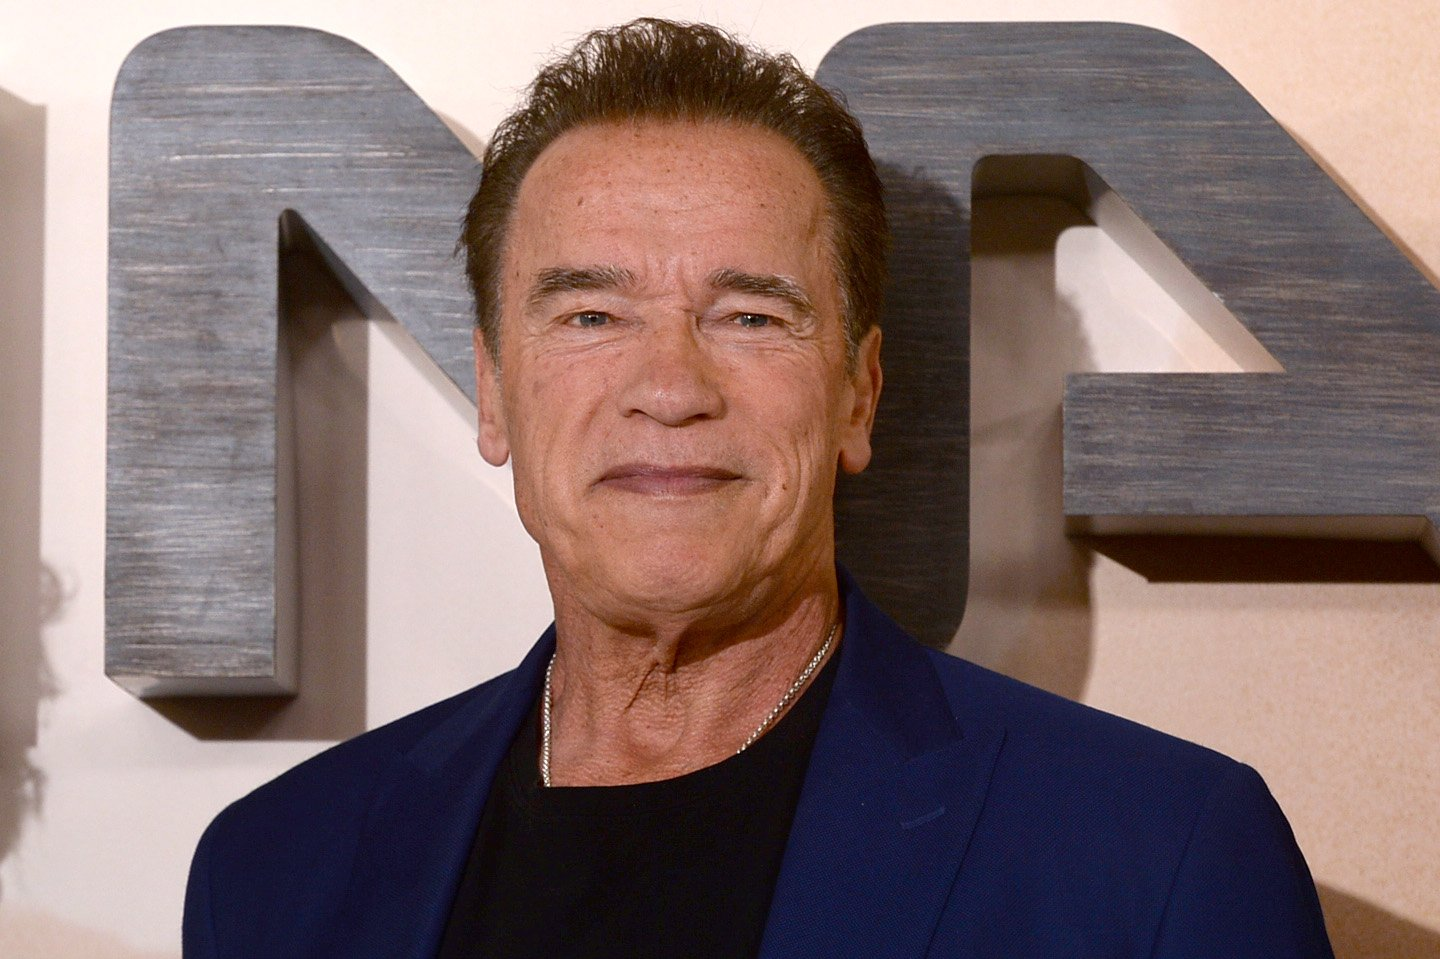 Arnold Schwarzenegger on October 17, 2019 in London, England | Source: Getty Images/Global Images Ukraine